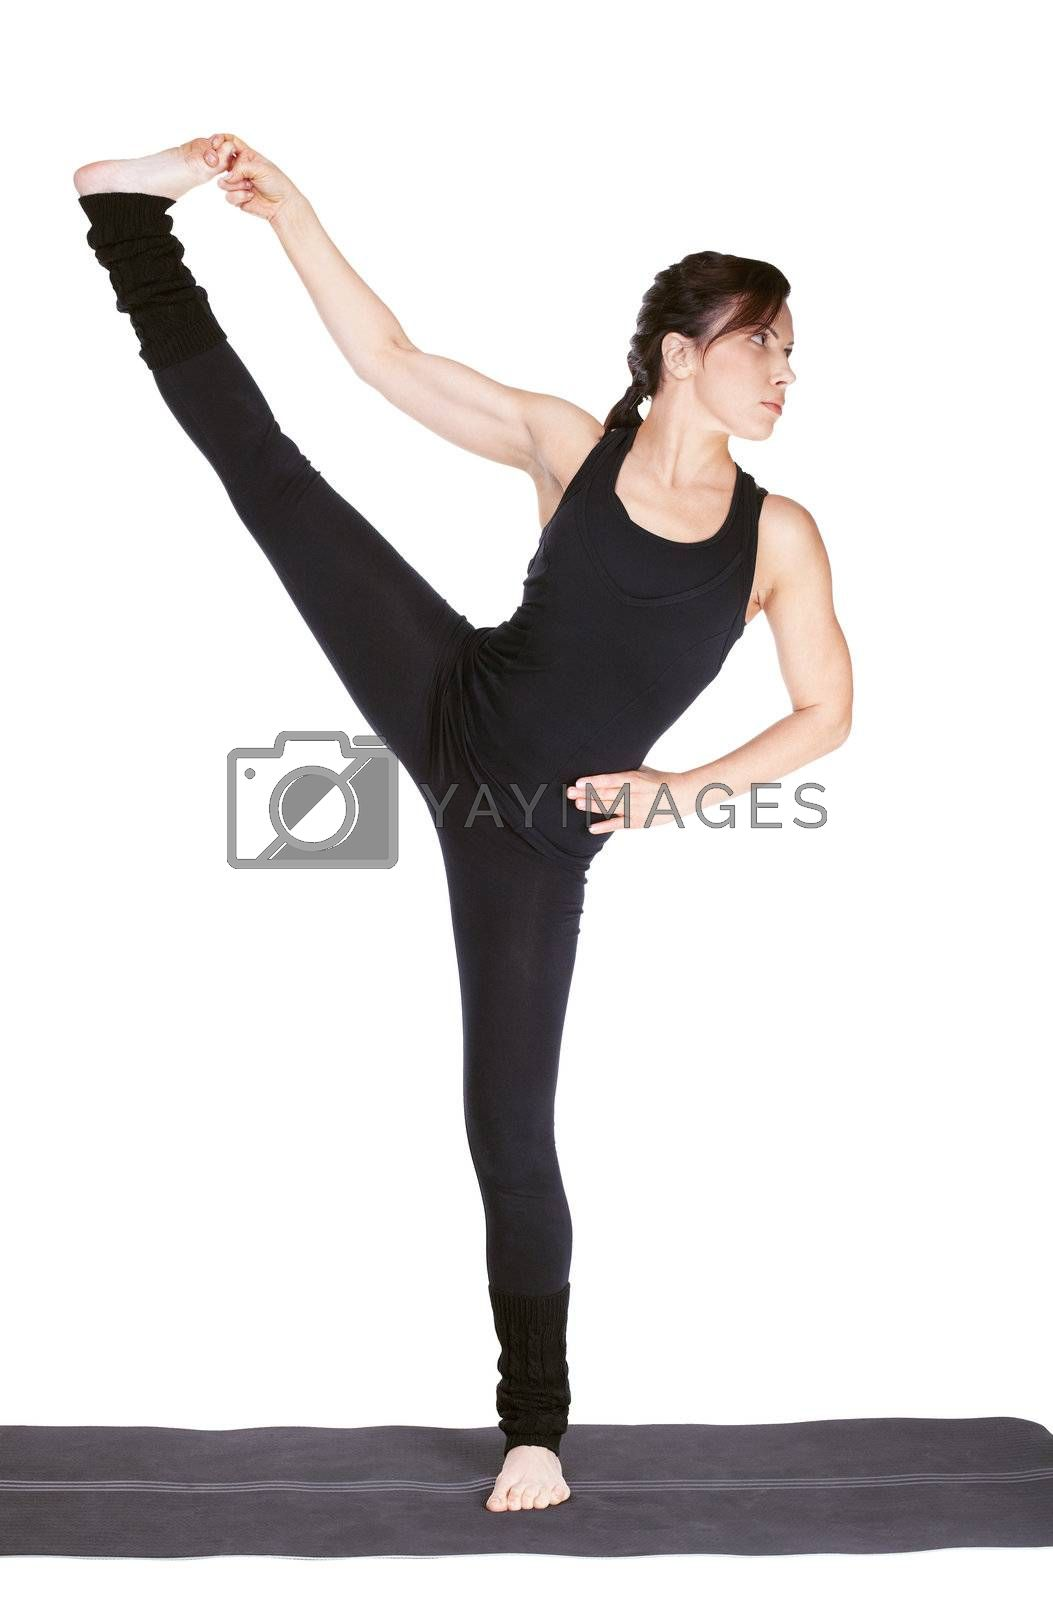 full-length portrait of beautiful woman working out yoga exercise utthita hasta padangustasana (extended hand-to-vig-toe pose). balancing on one leg on fitness mat